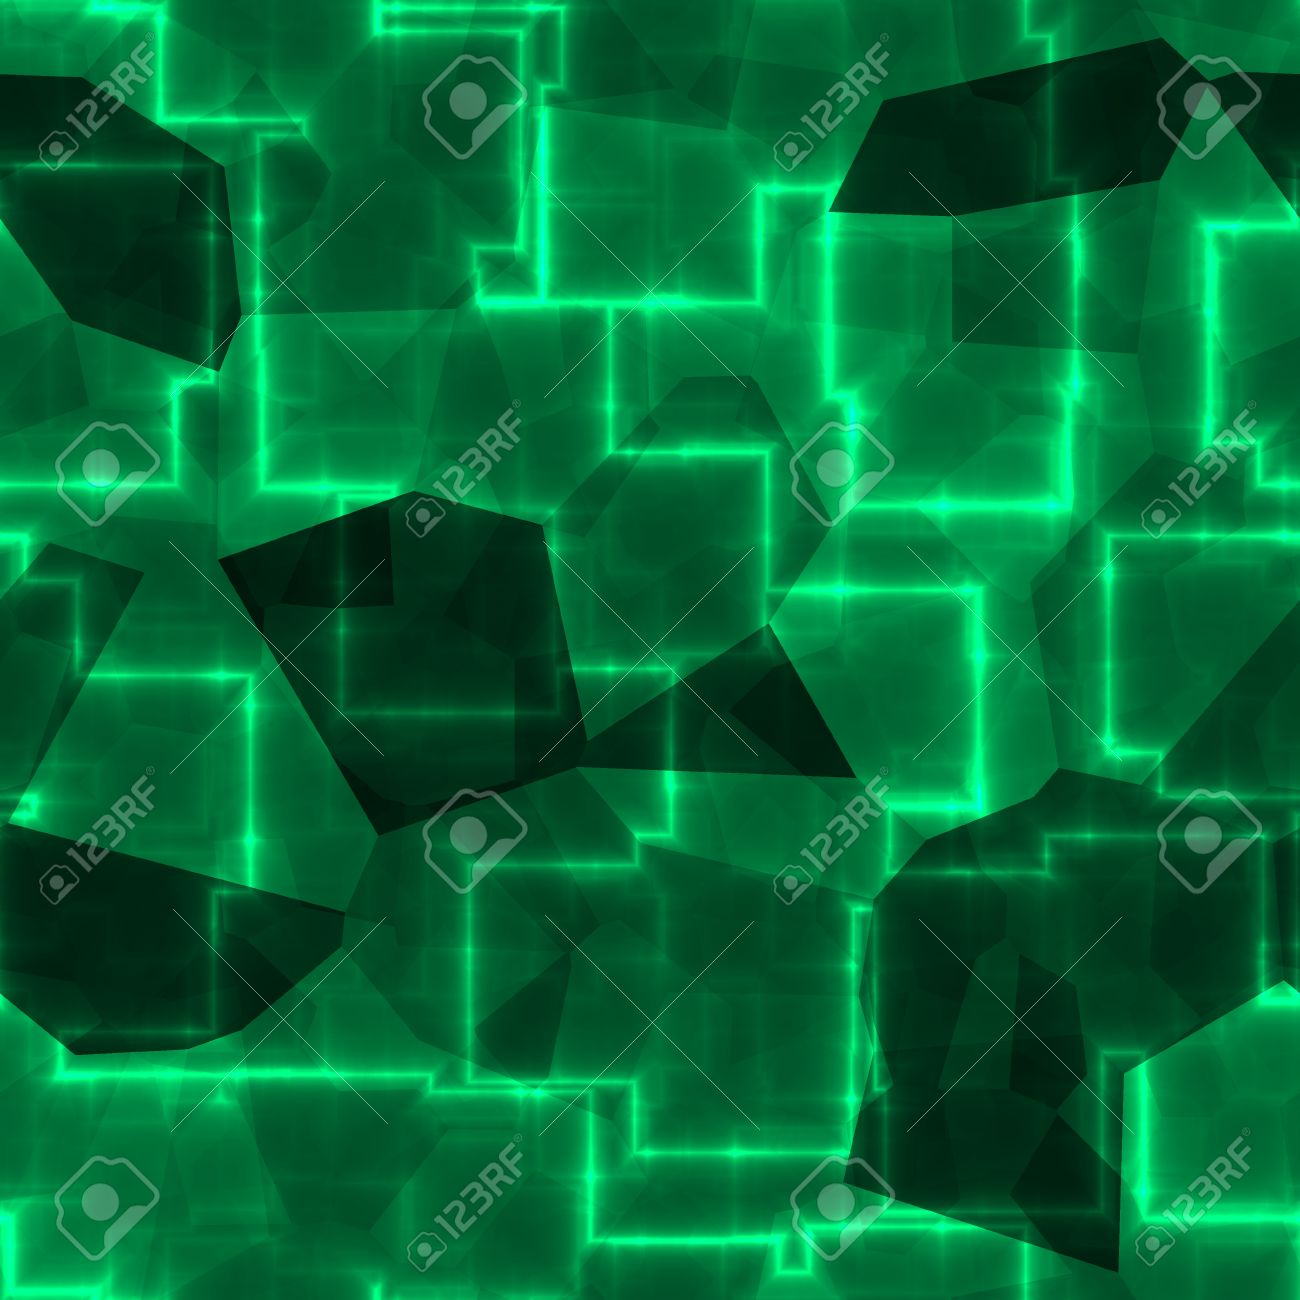 Abstract Emerald Green Wallpaper Background Pattern